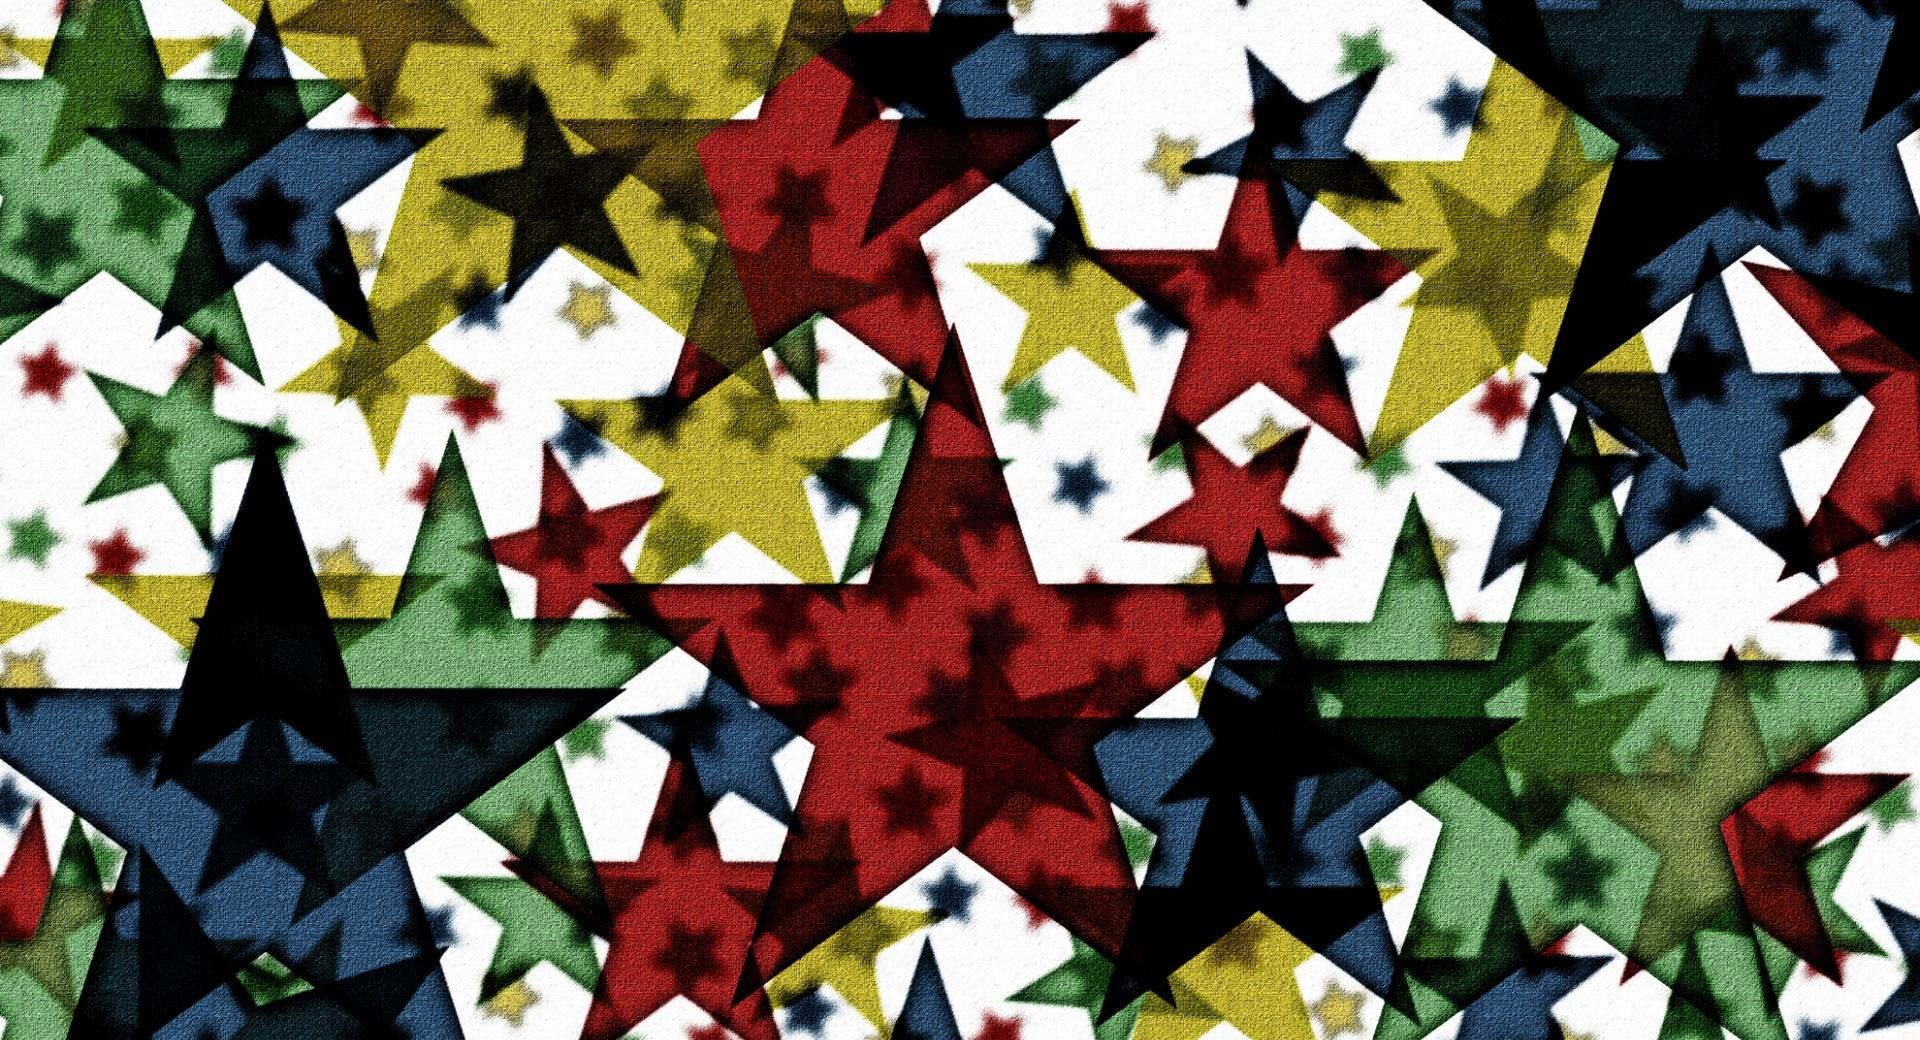 Colored Stars at 2048 x 2048 iPad size wallpapers HD quality